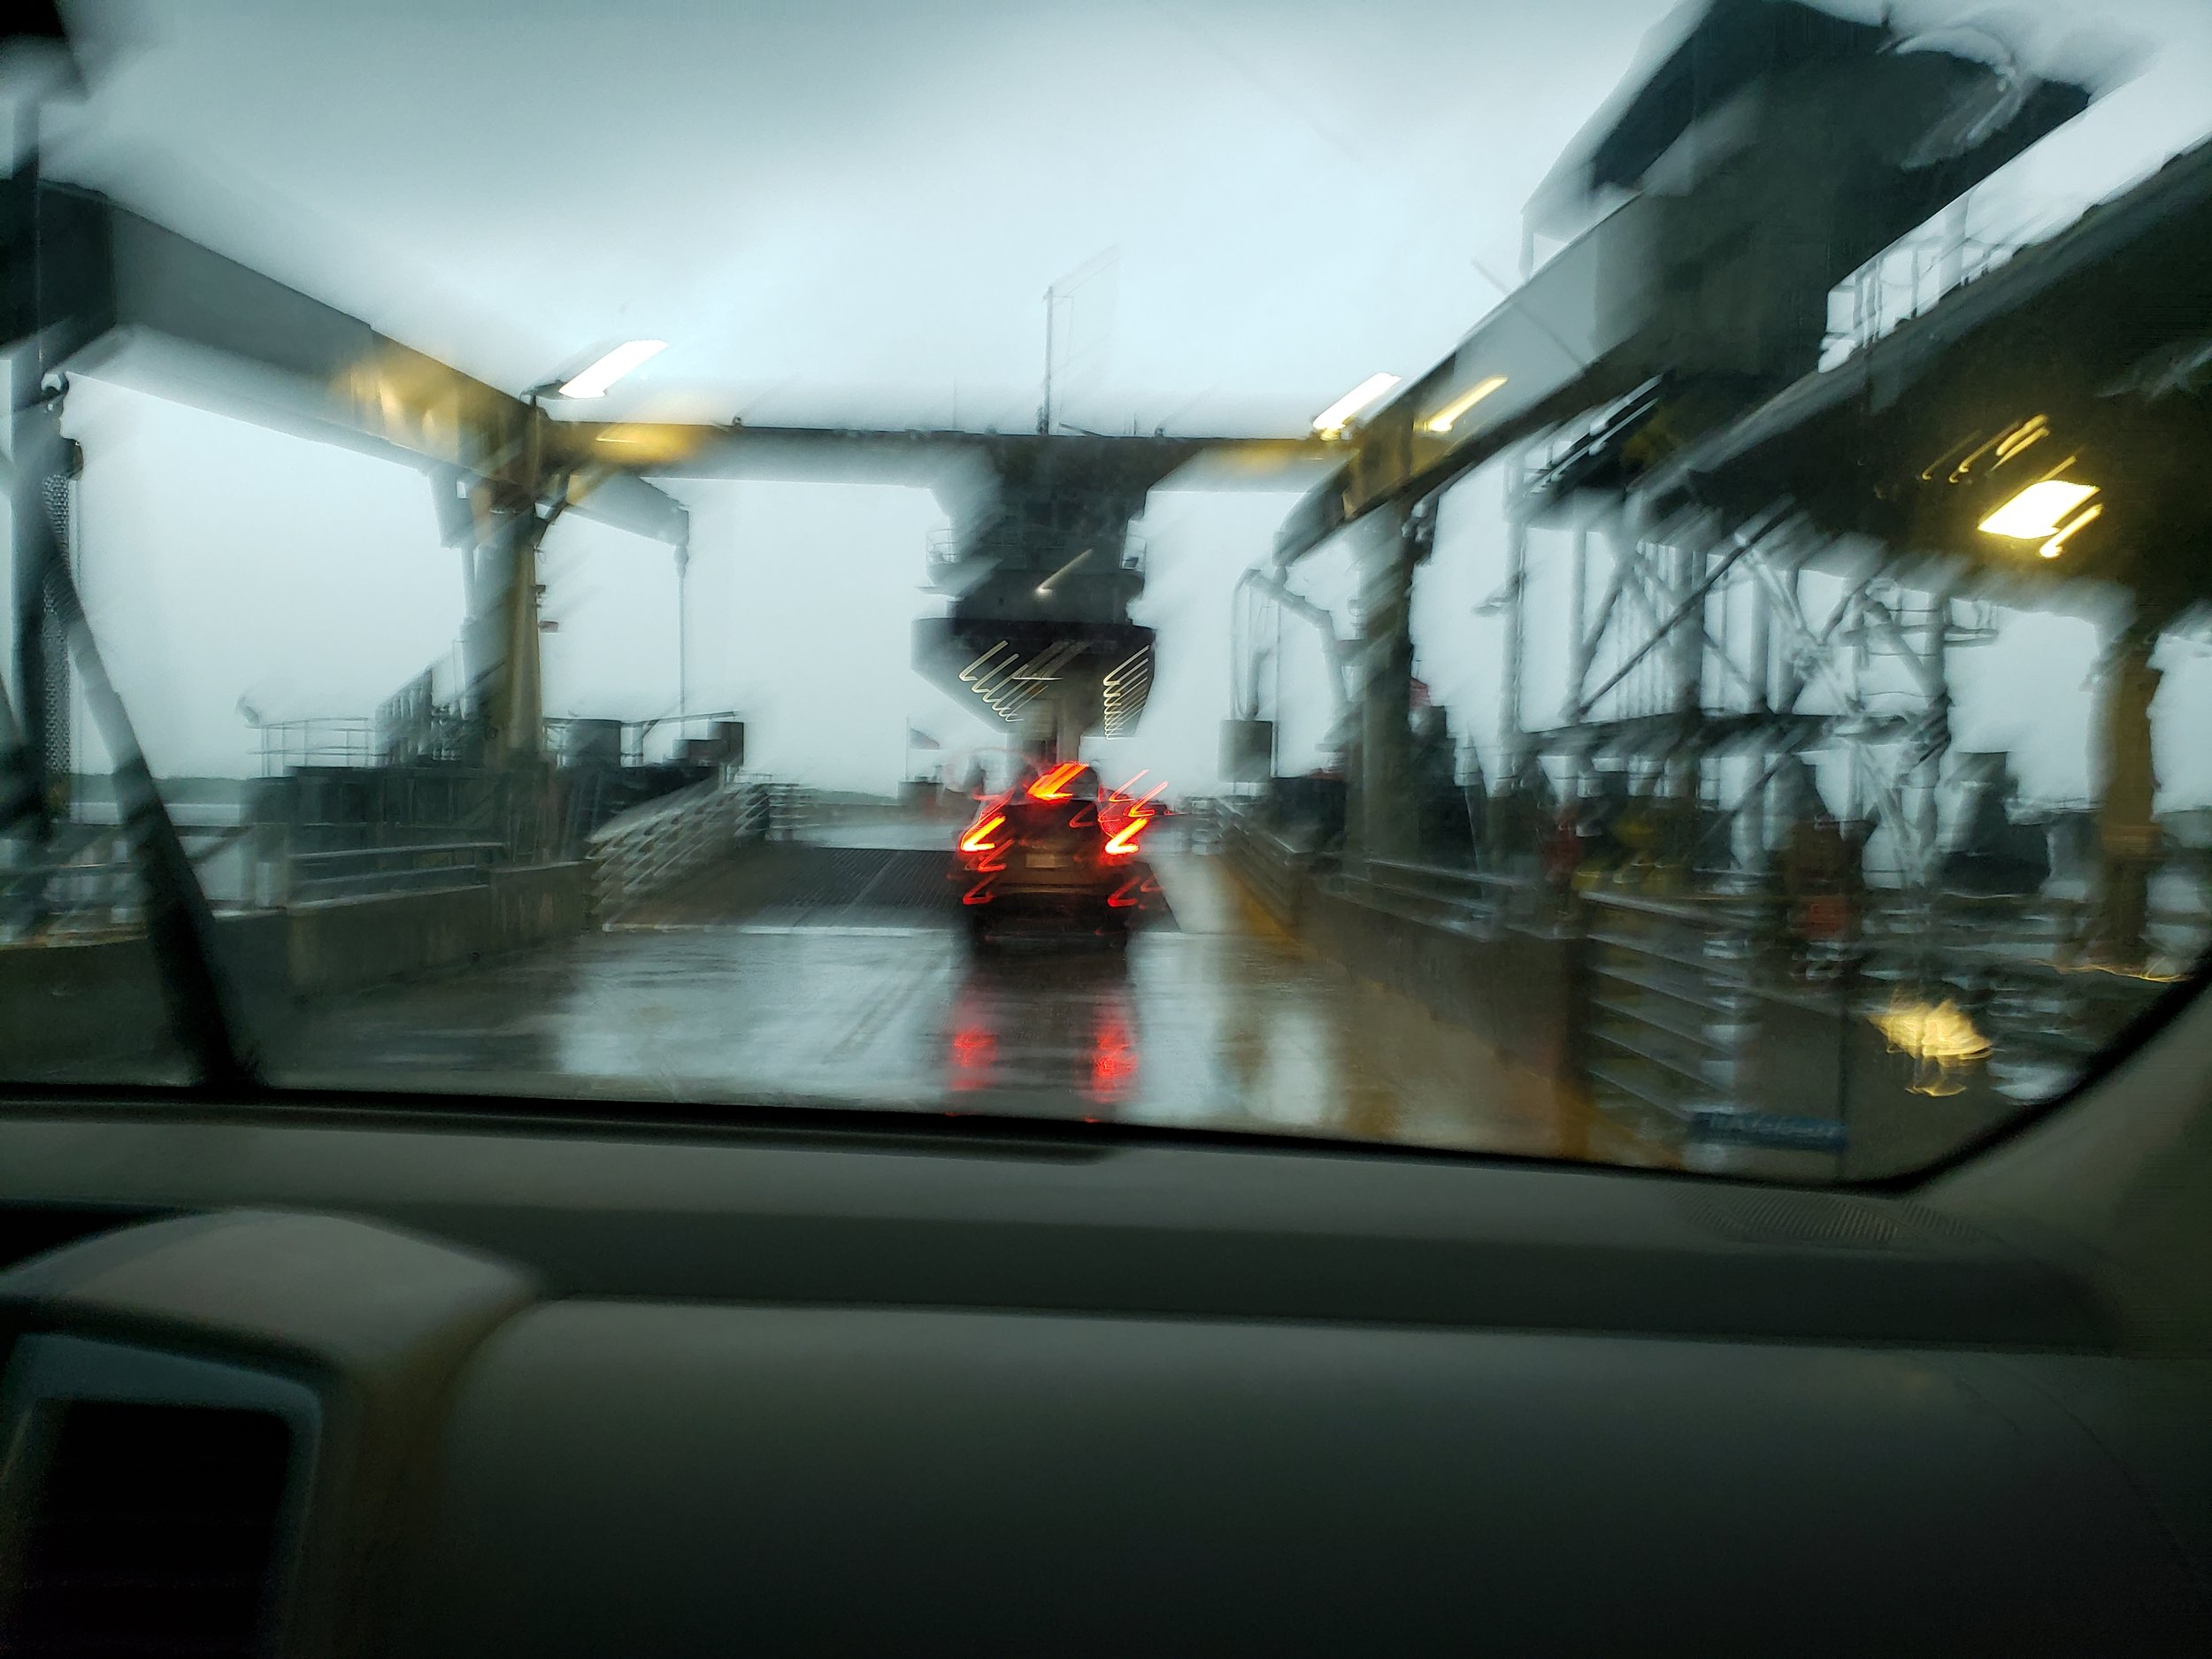 Getting on the ferry